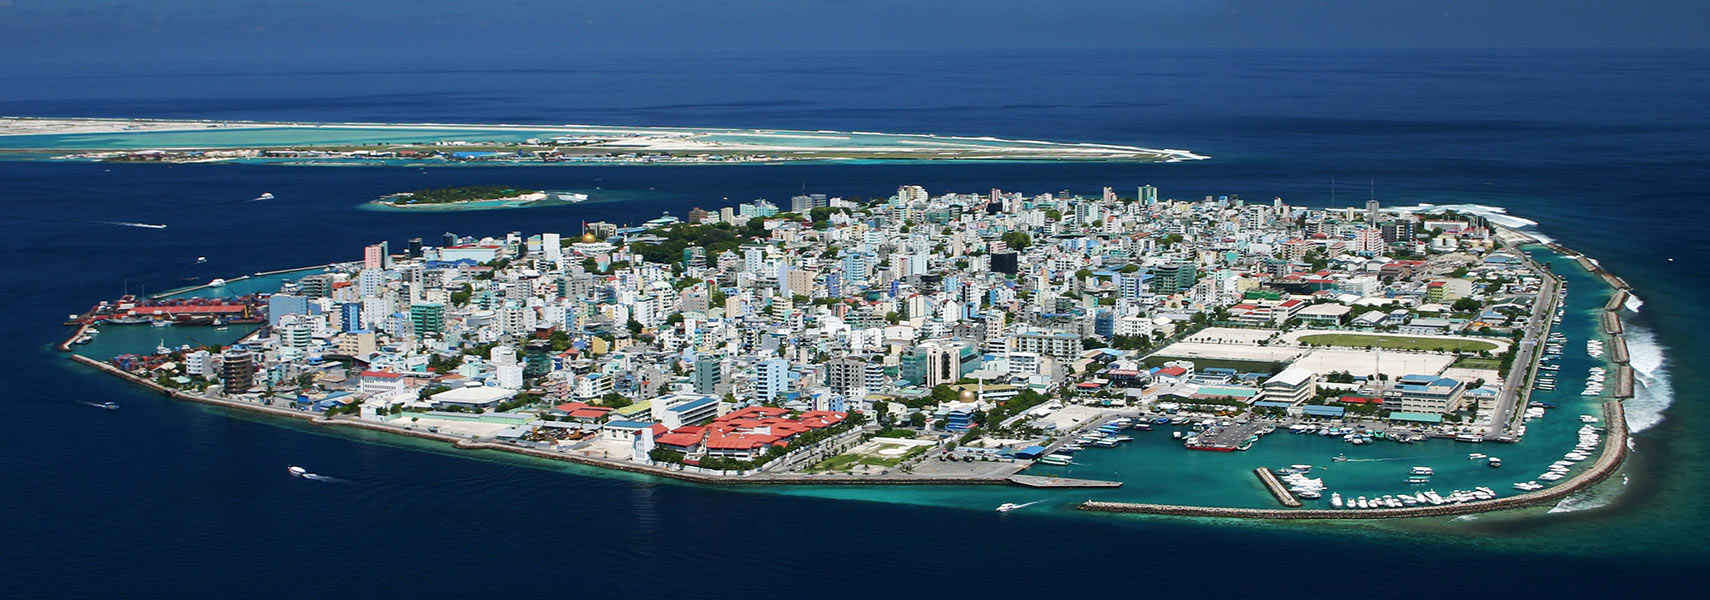 Malé island with the capital of the Maledives